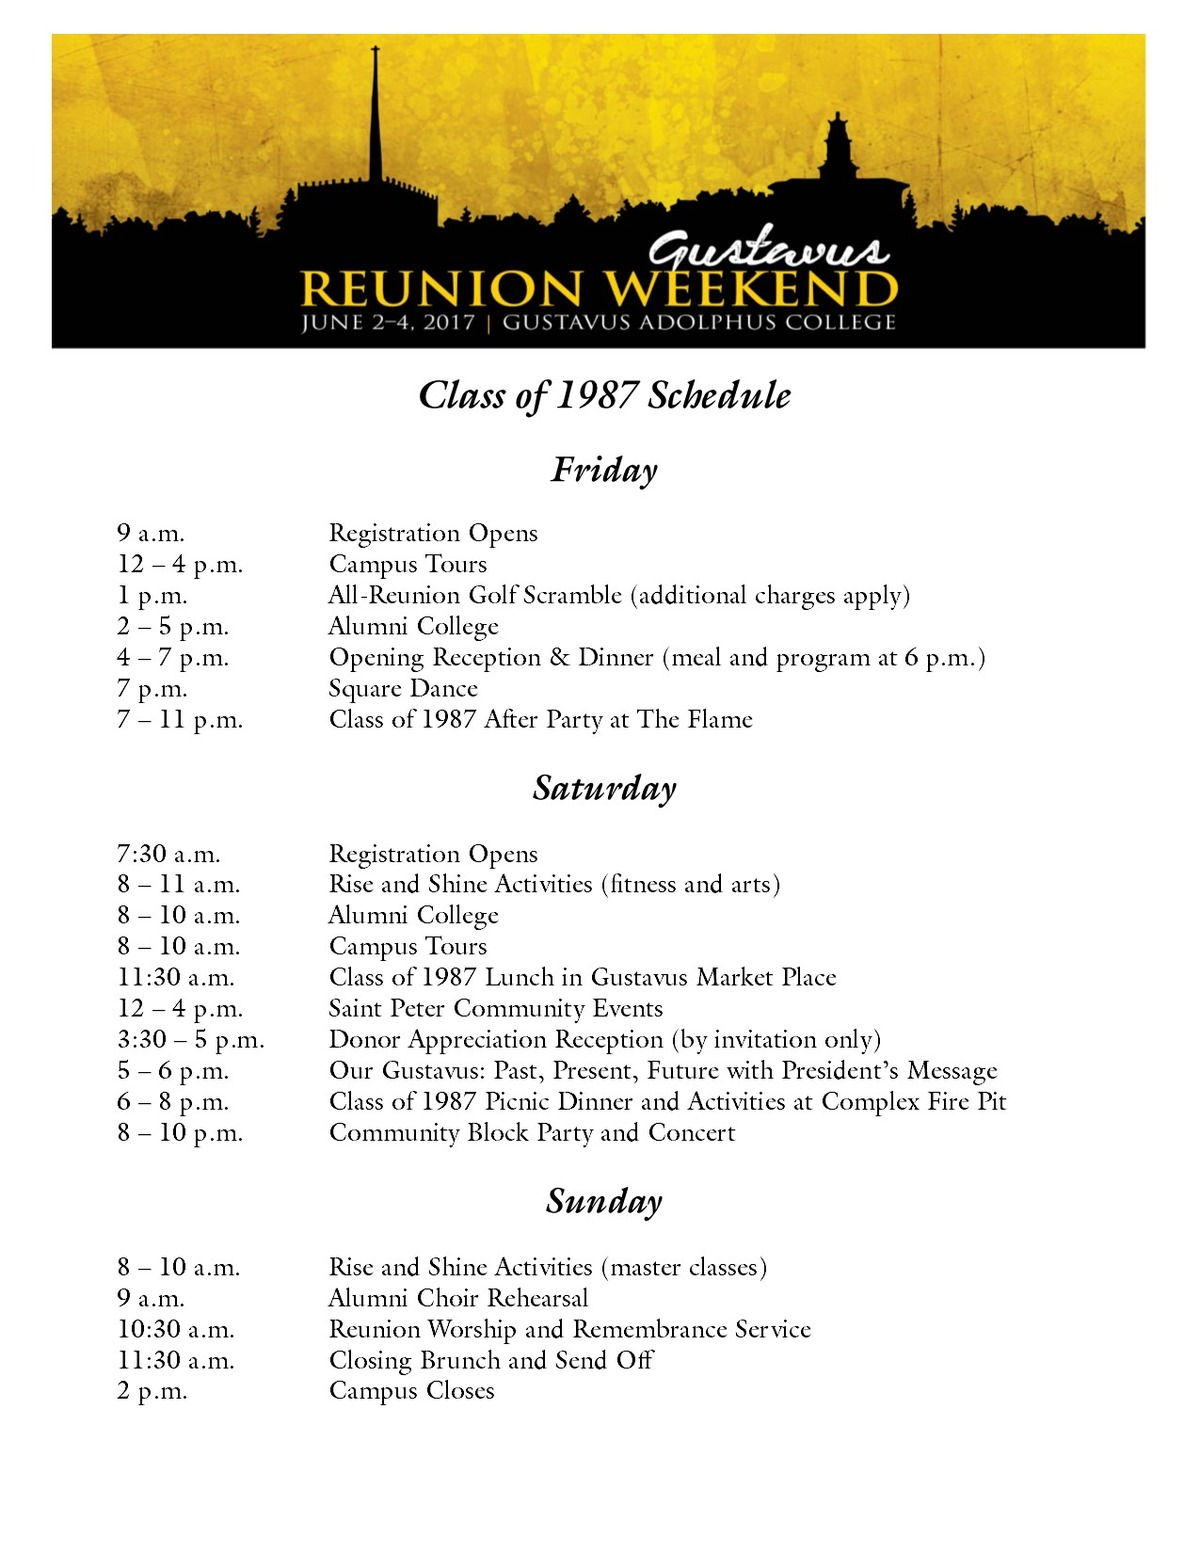 Class of 1987 Reunion Weekend Schedule